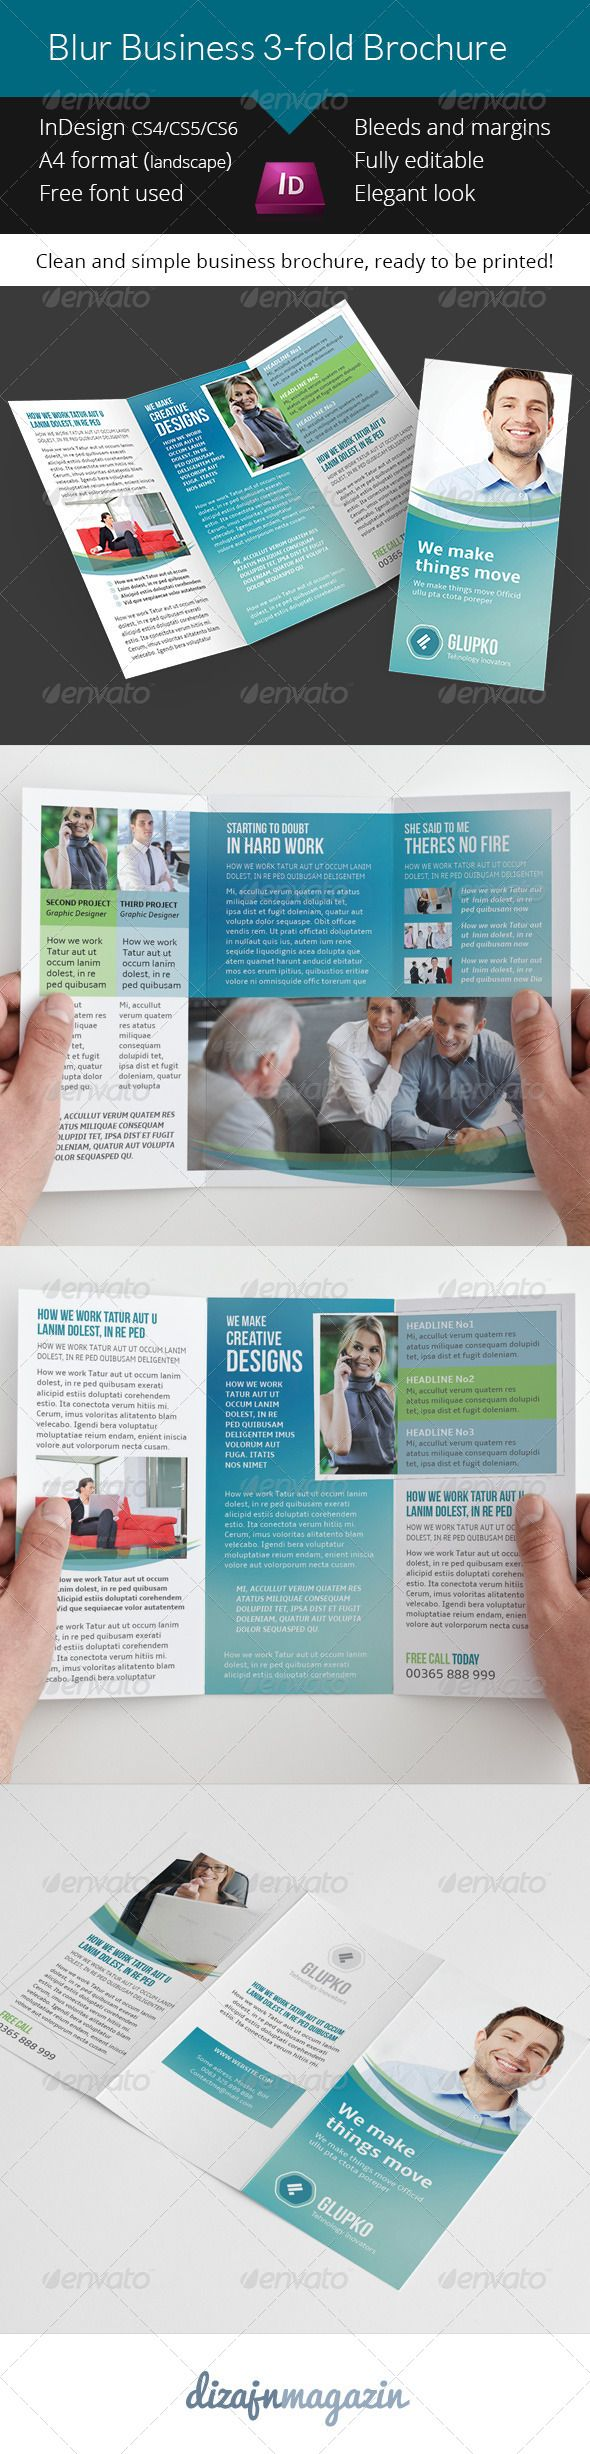 Best Trifold Brochure Template PSD Images On Pinterest - Indesign trifold brochure template